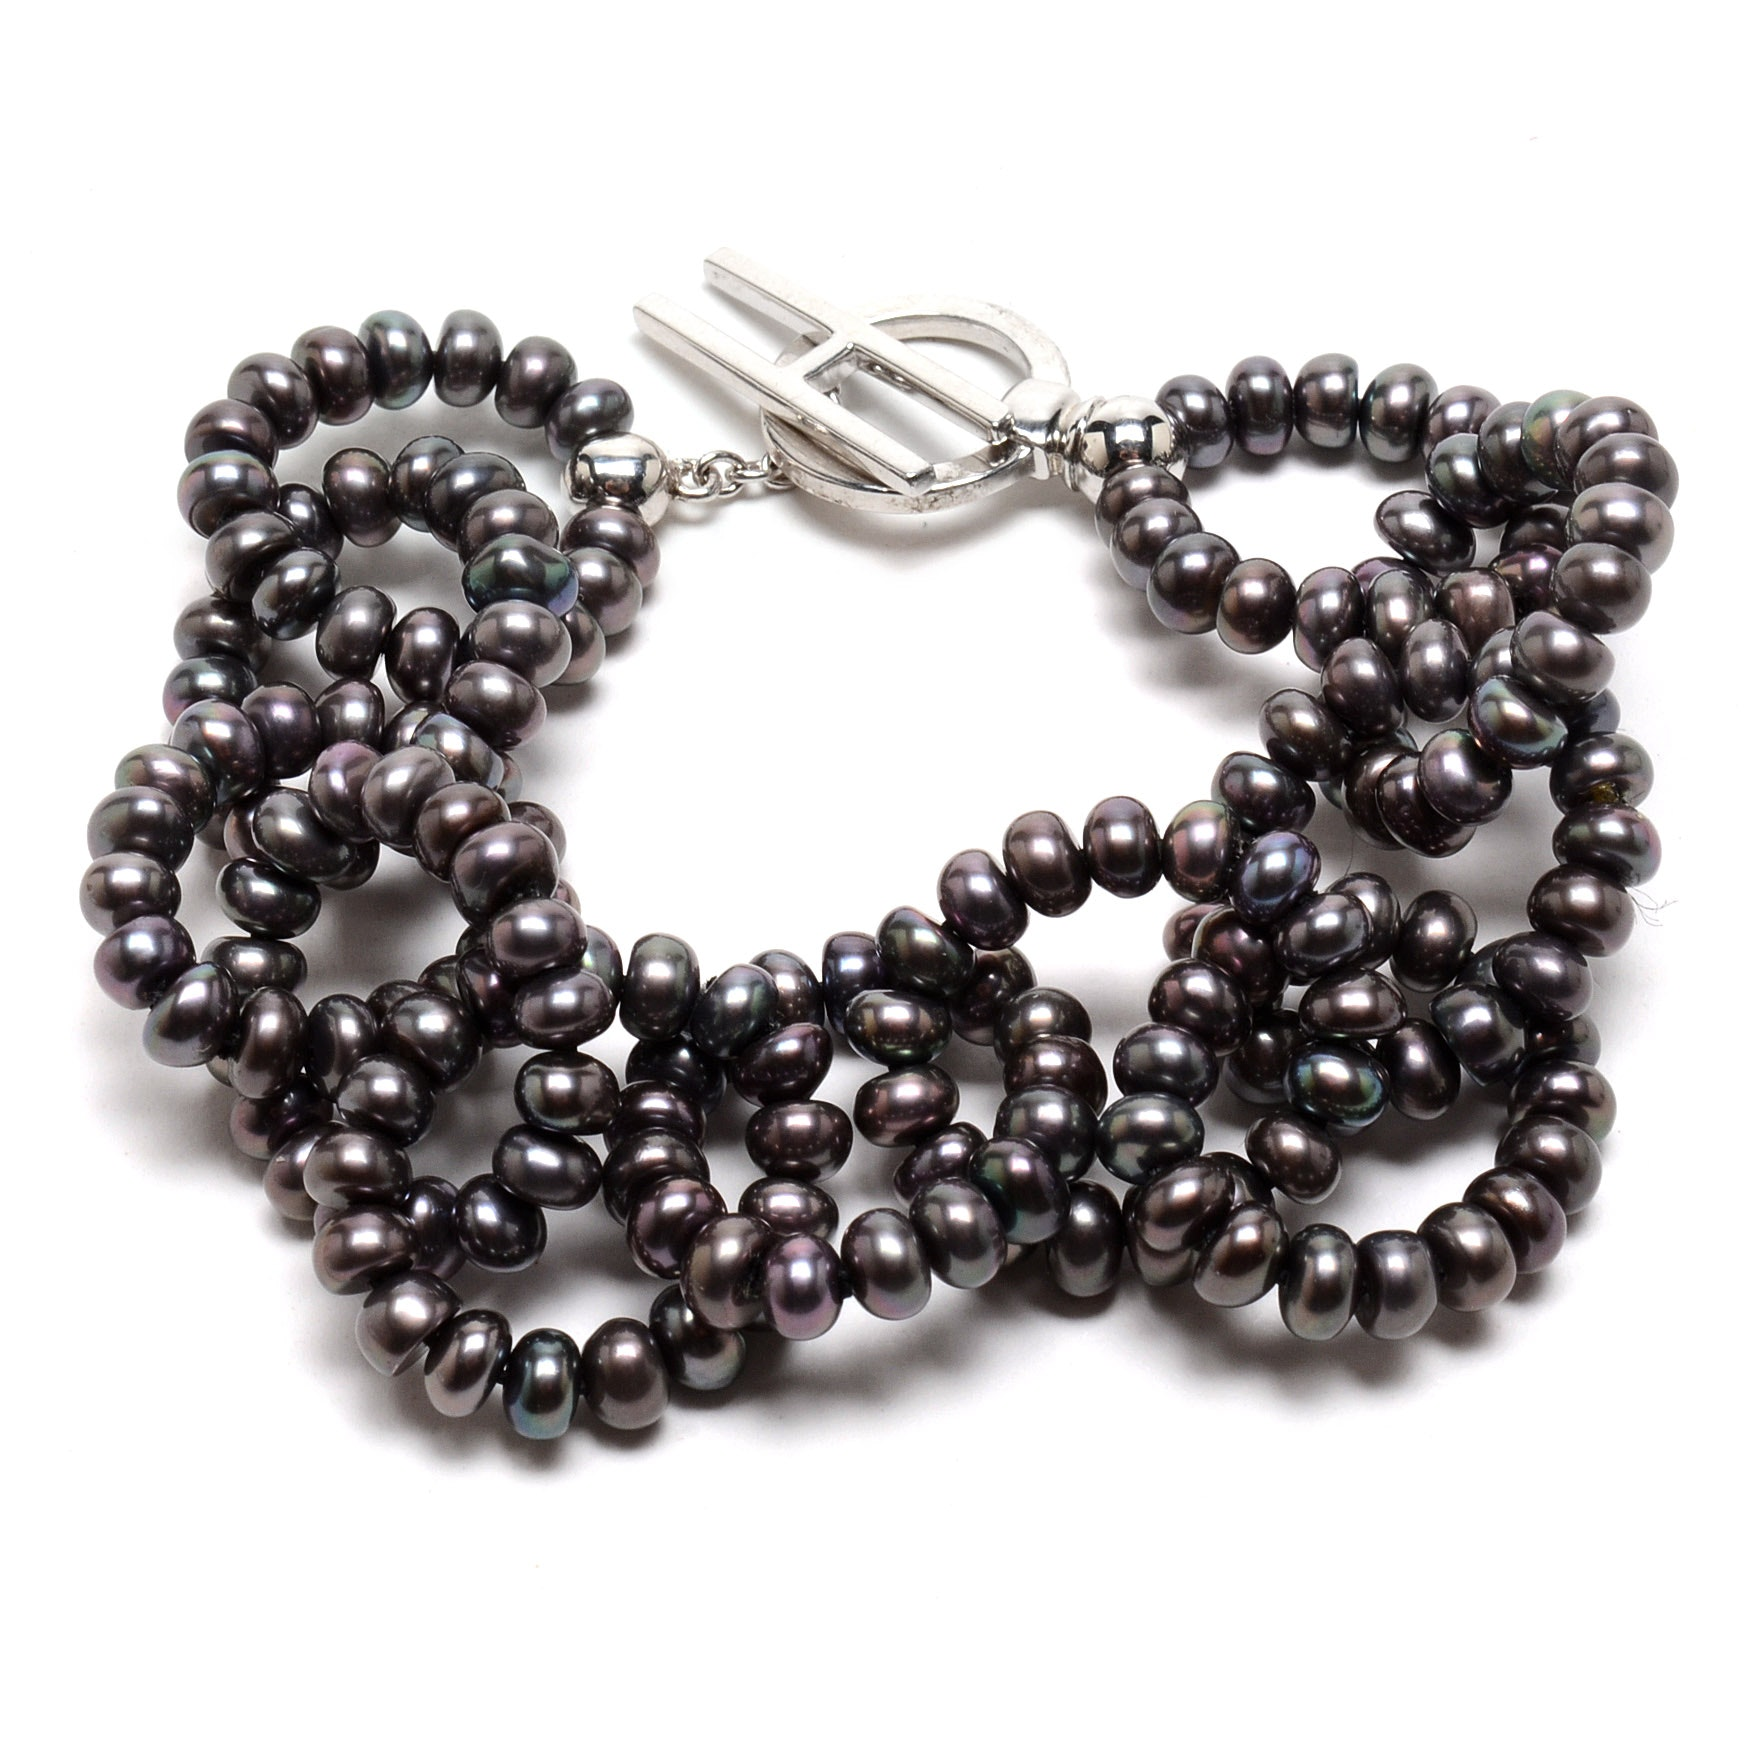 Honora Freshwater Cultured Black Pearl Linked Bracelet with Sterling Silver Clasp